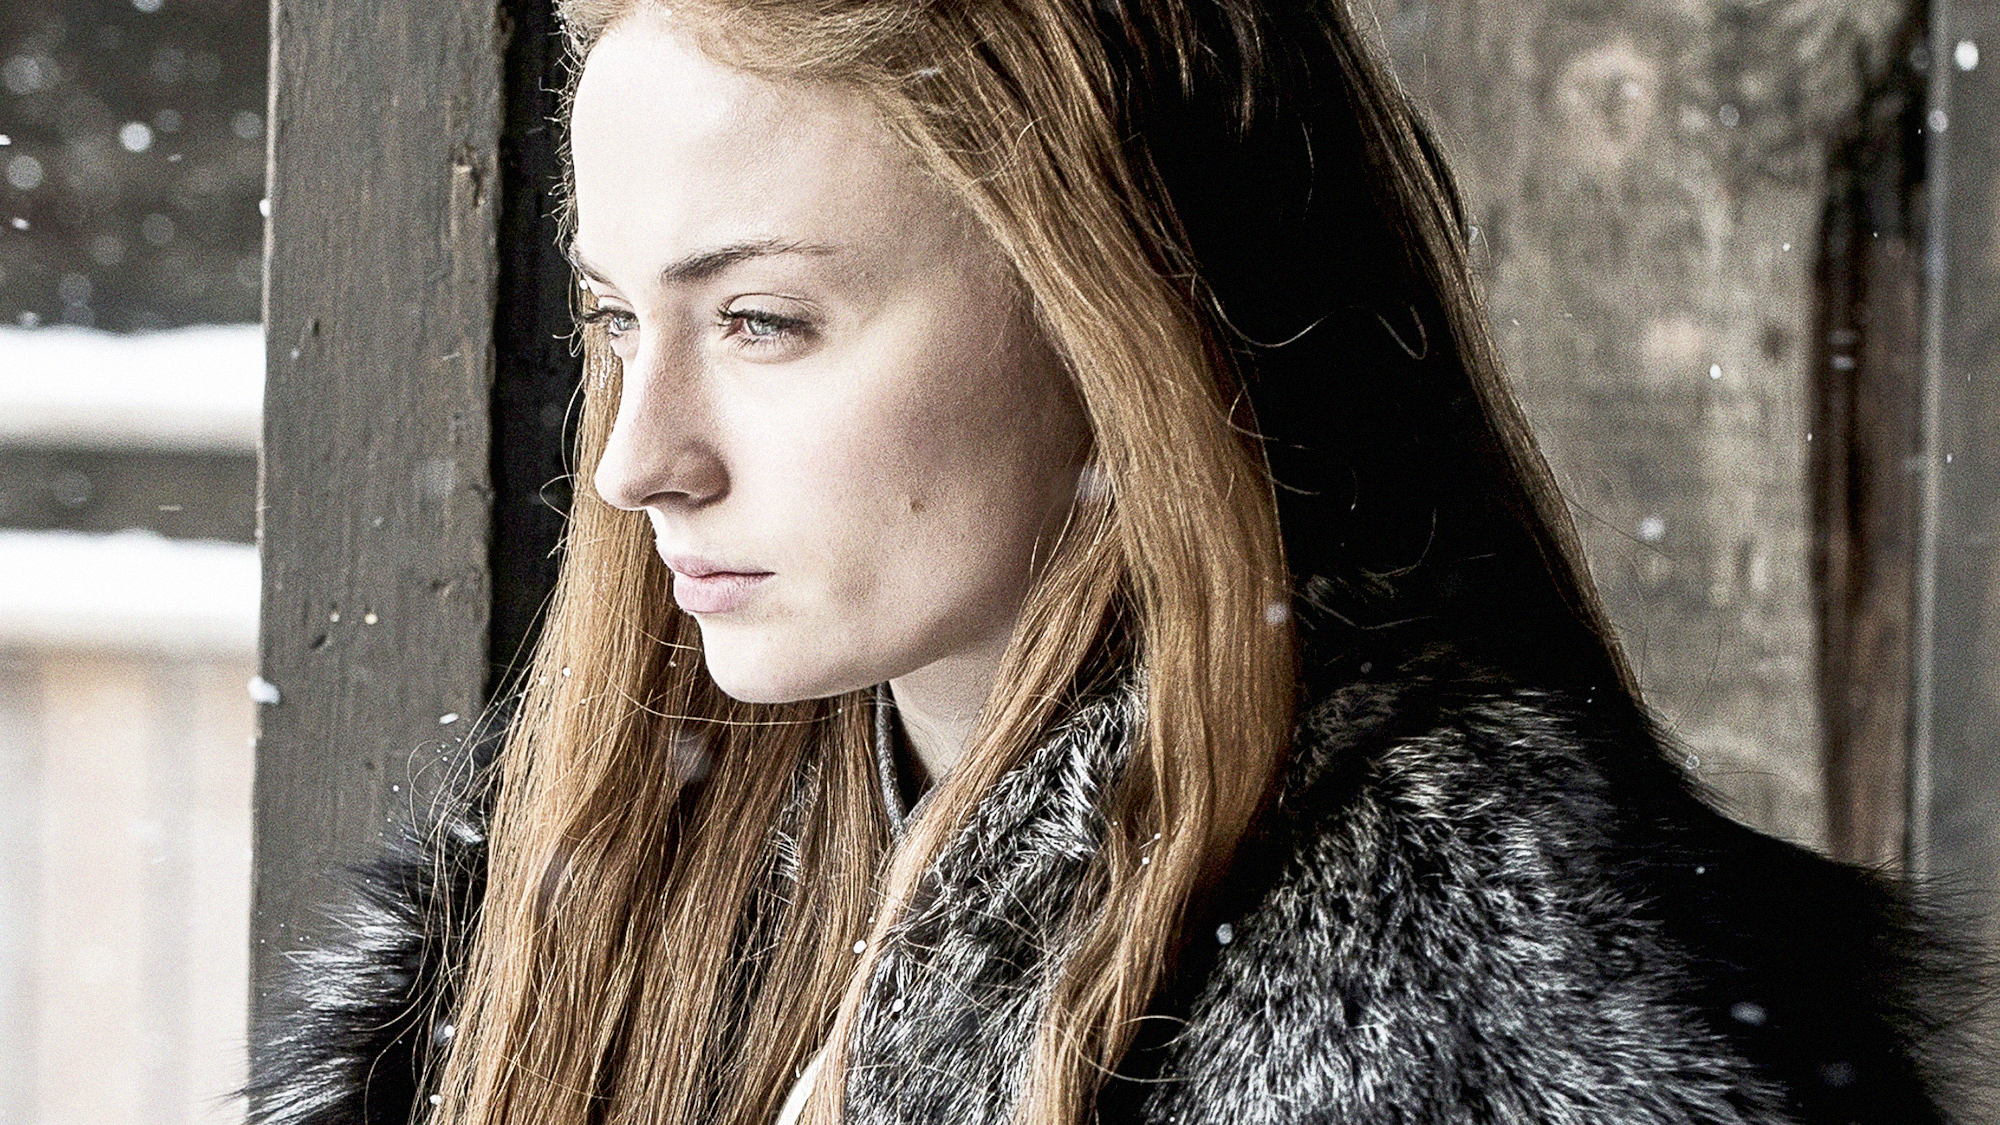 7amazing hairstyles welearned from 'Game ofThrones' heroines